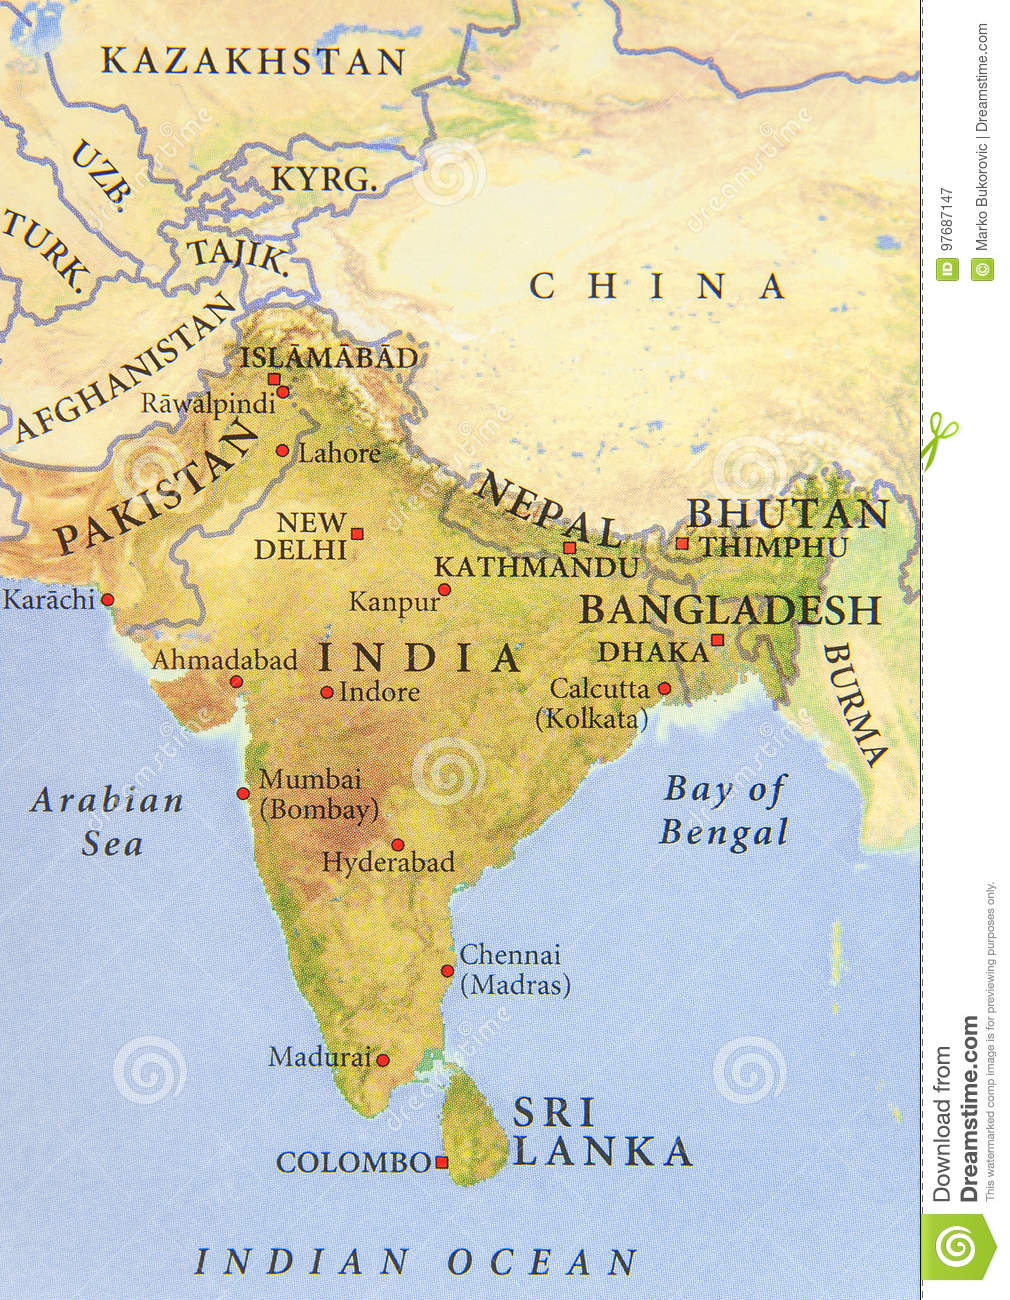 Cartina India Pakistan.Geographic Map Of Pakistan India Nepal Bangladesh And Bhutan With Important Cities Stock Image Image Of Geography Direction 97687147